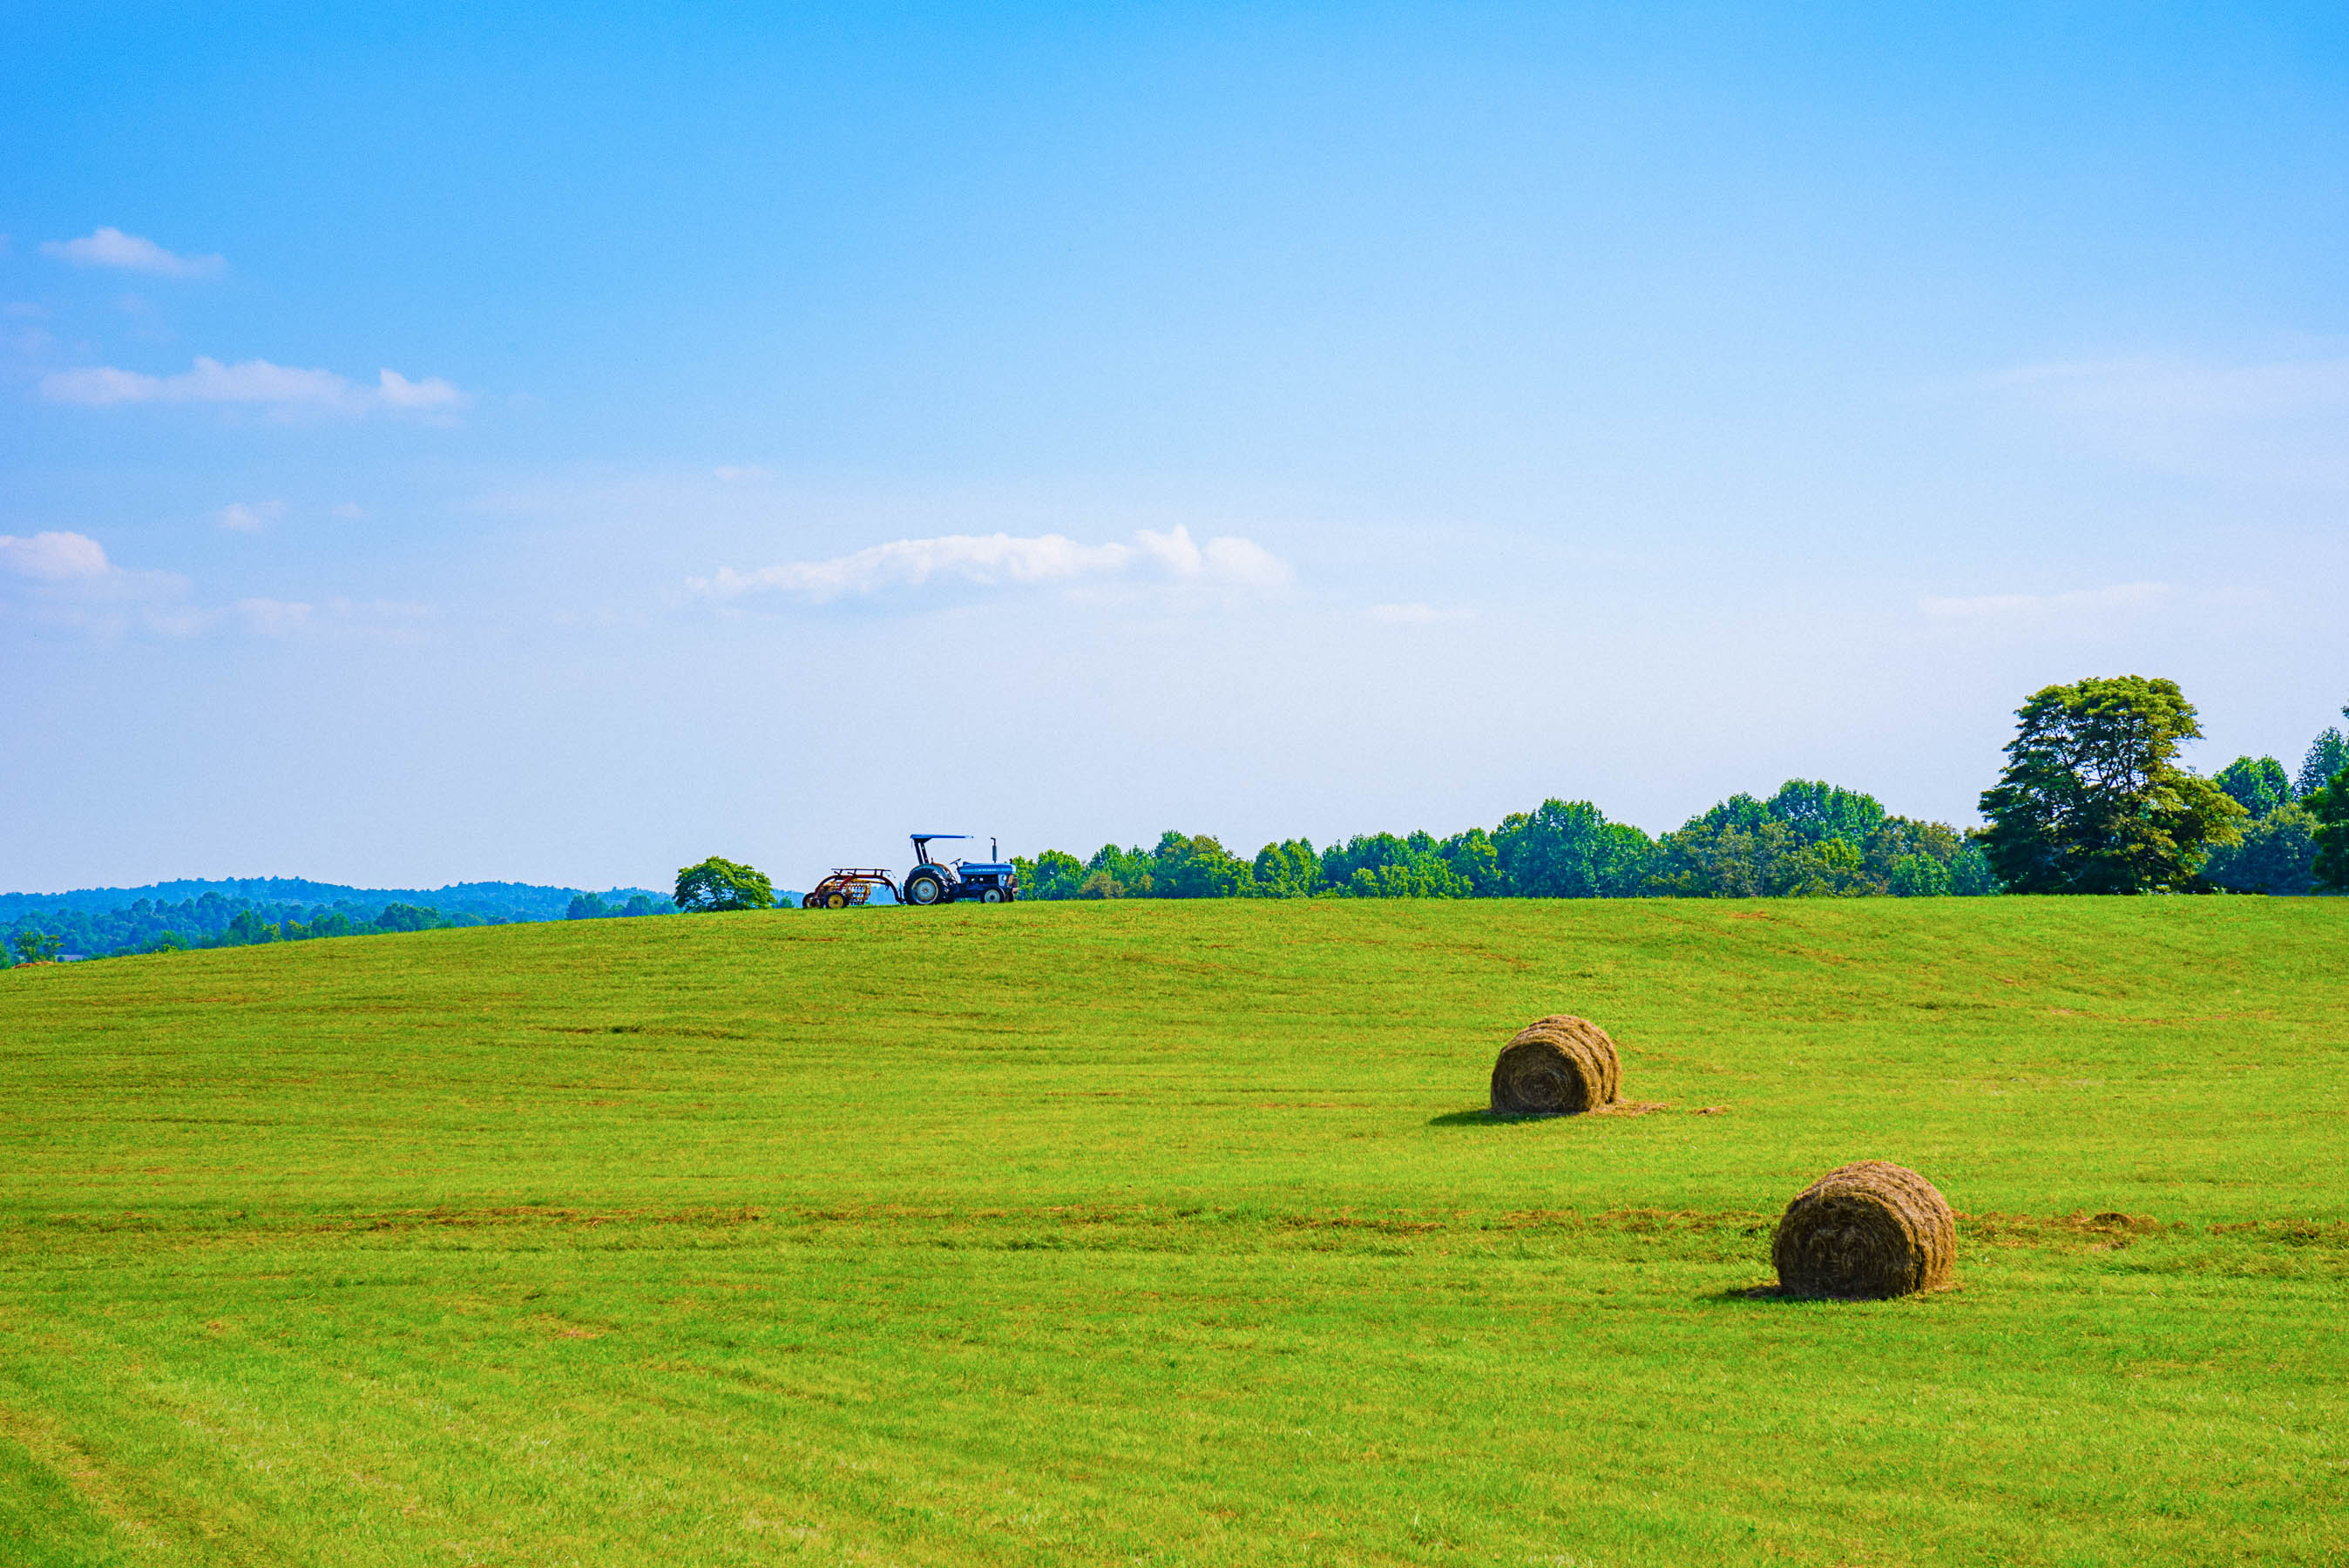 Landscape photography in Kentucky